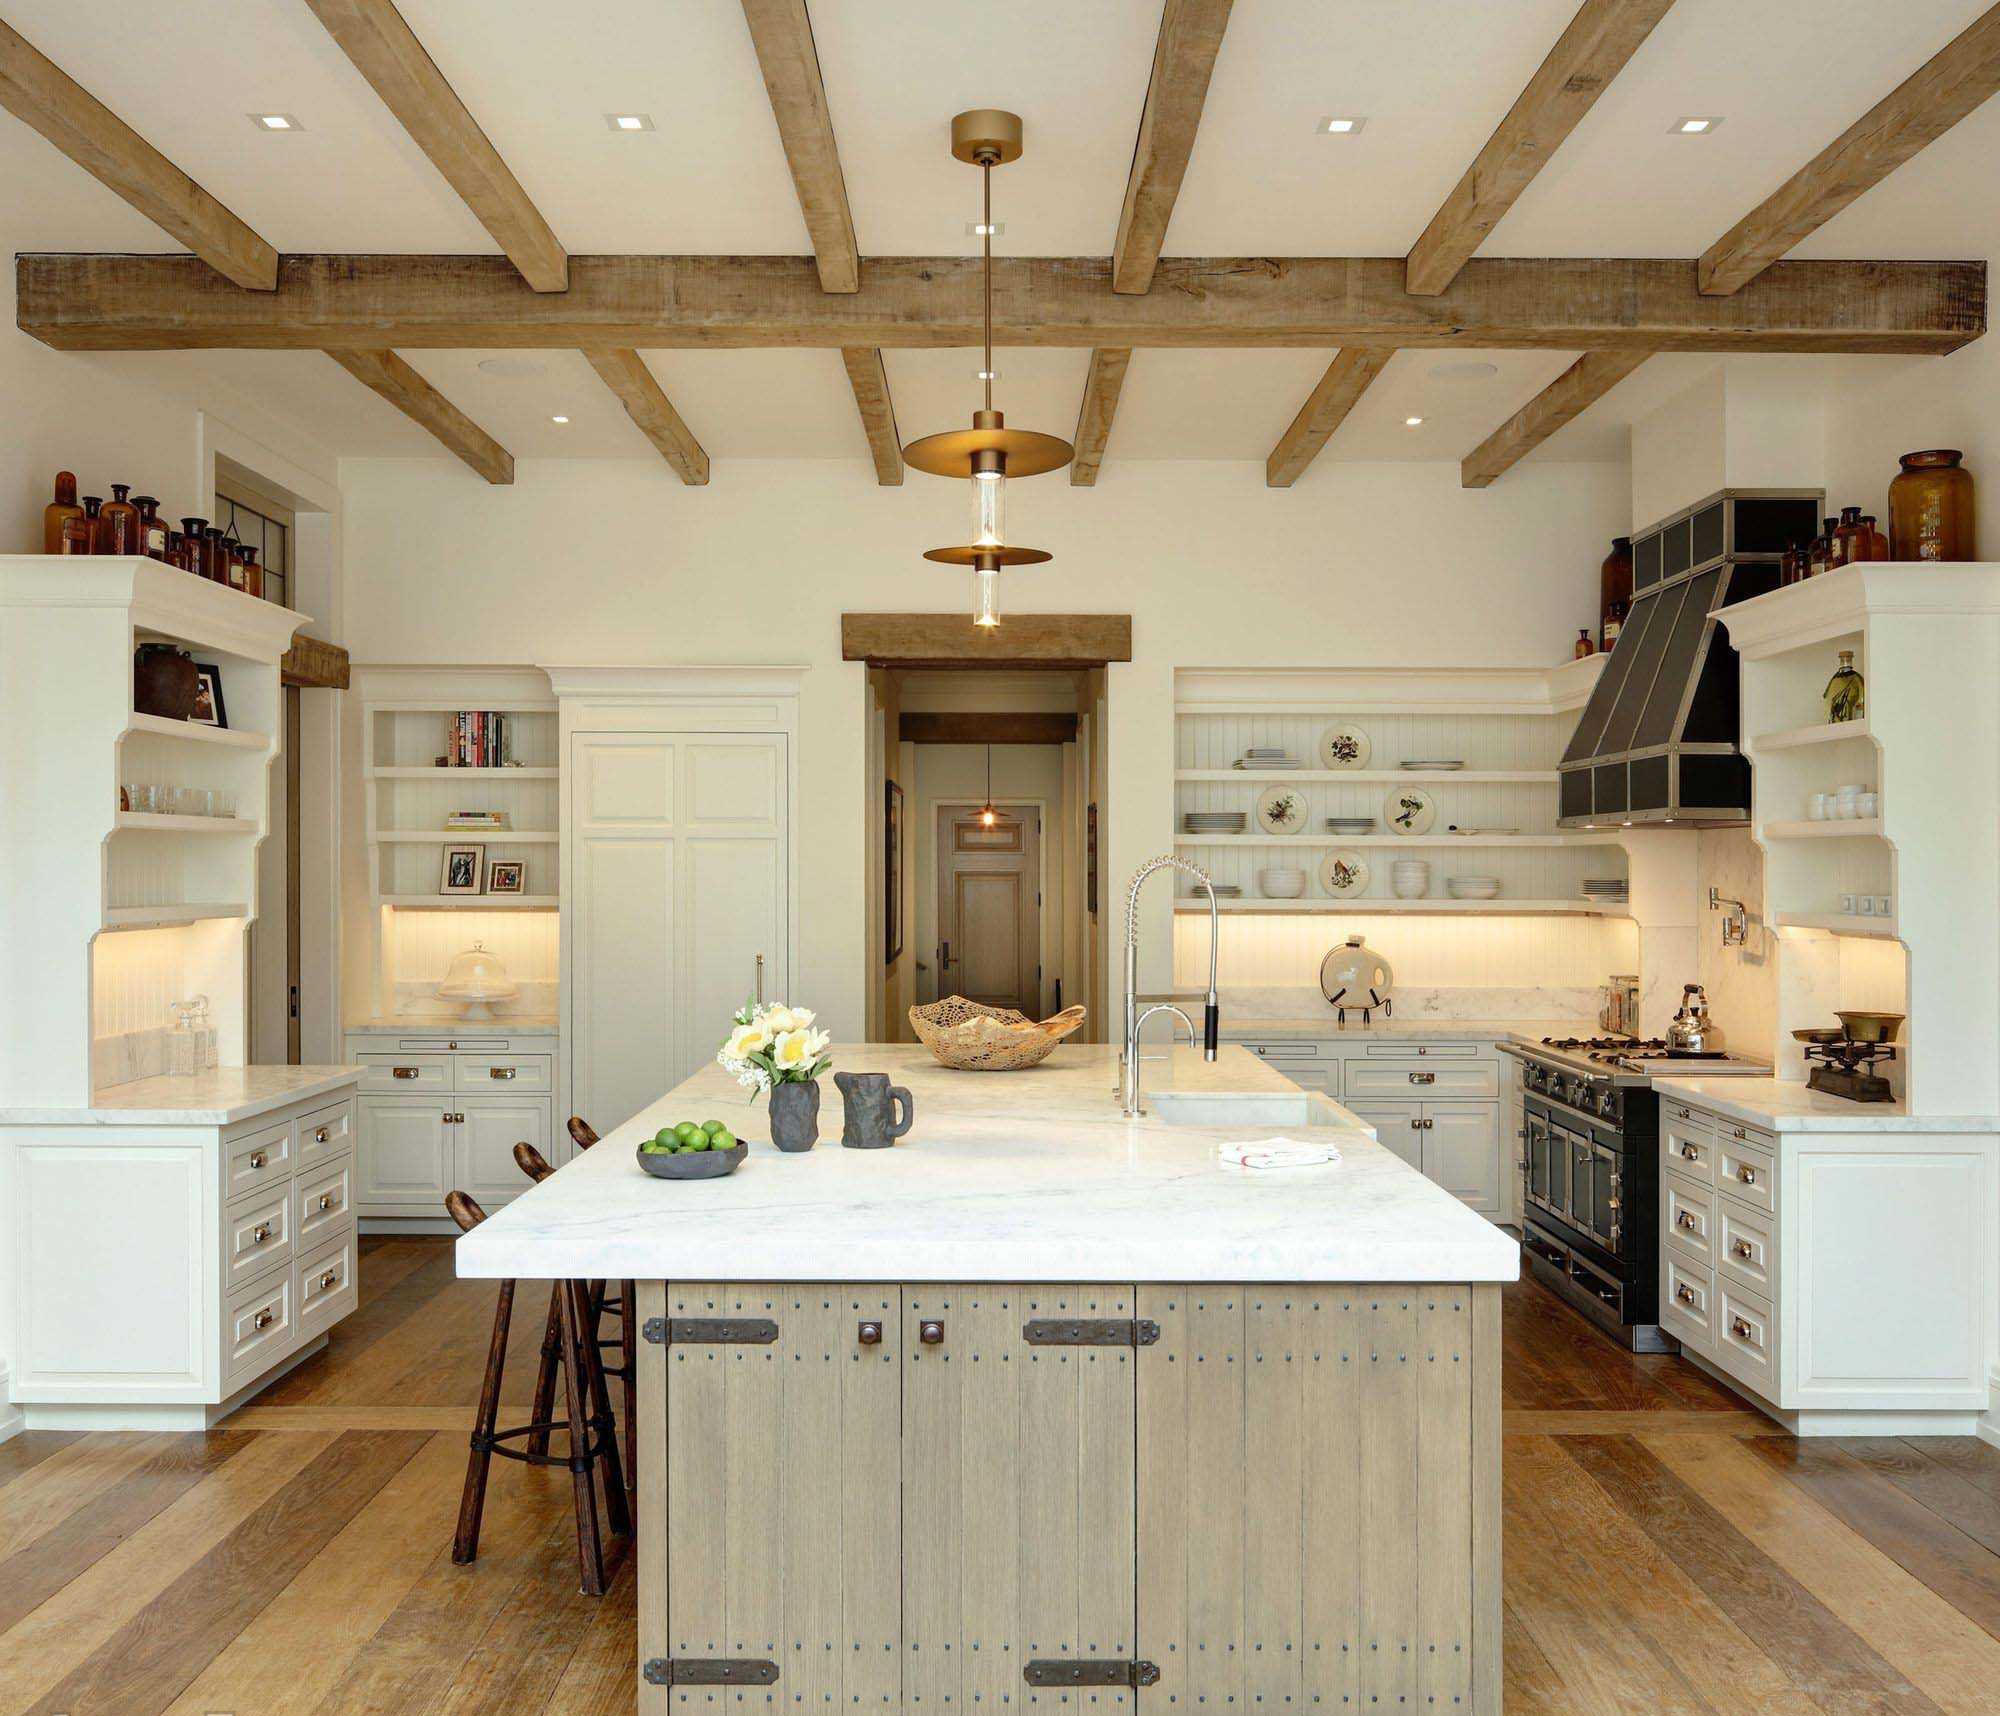 Exposed Beams In The Kitchen